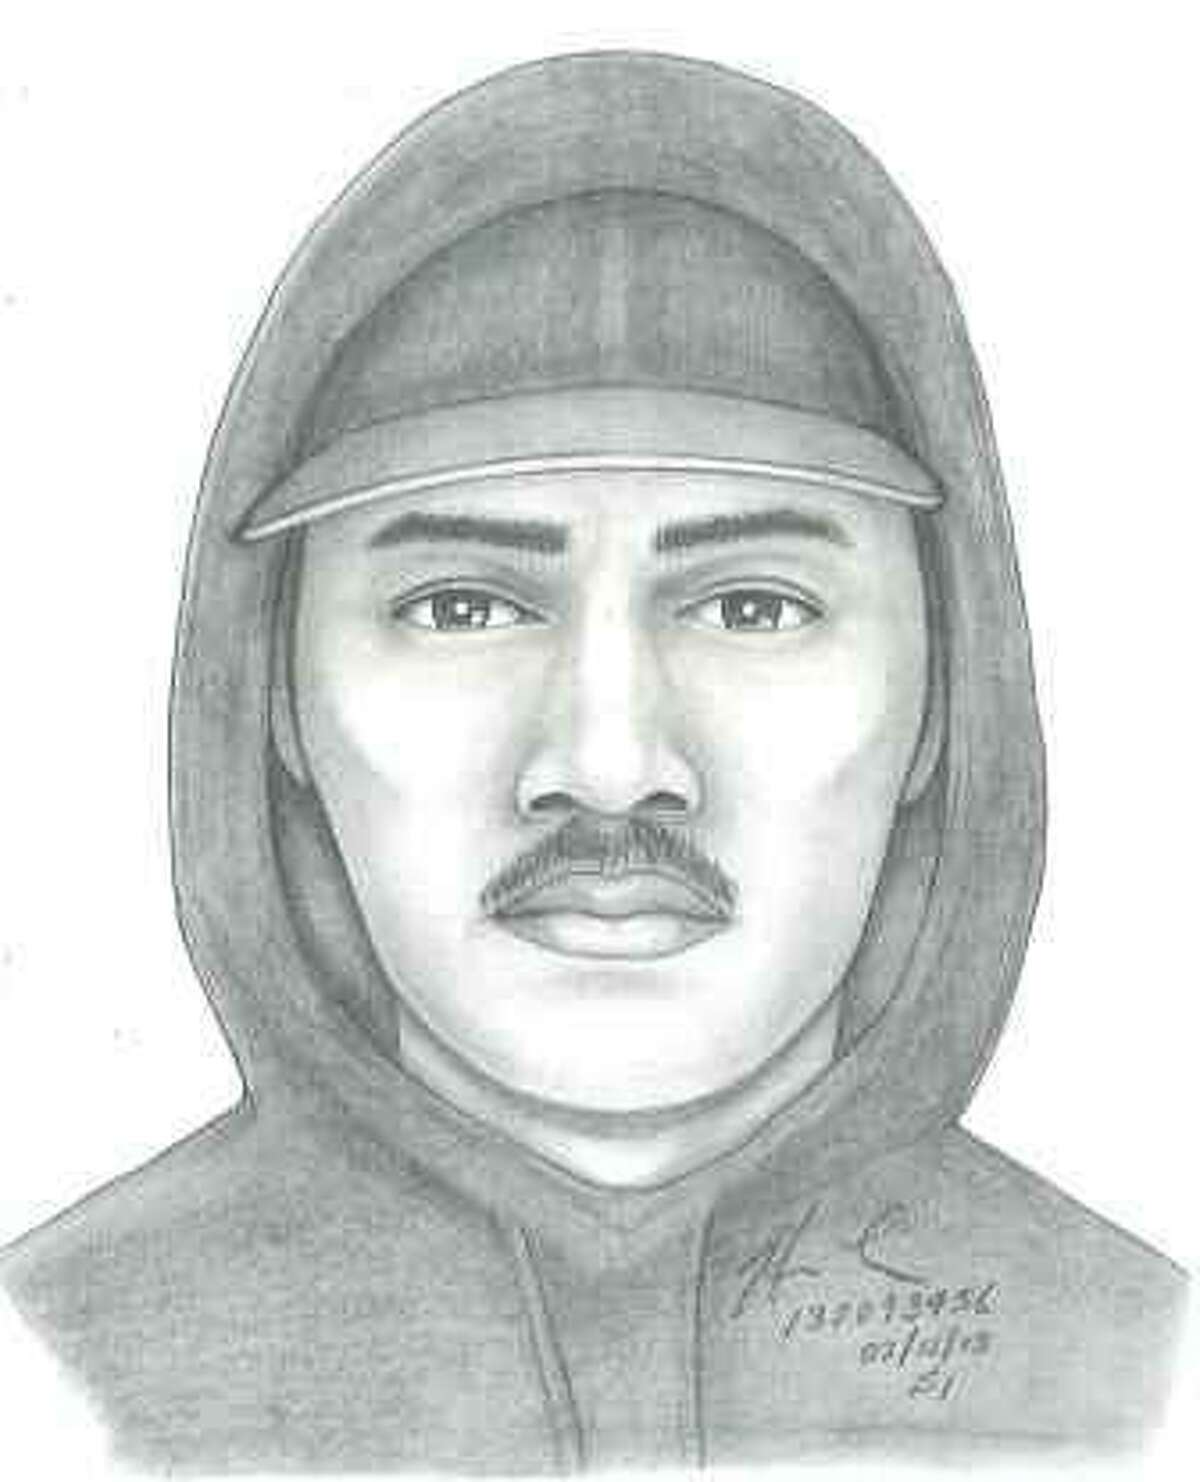 San Francisco police released this sketch of a man suspected in two apparently random Mission District assaults. (Courtesy / San Francisco Police Department)